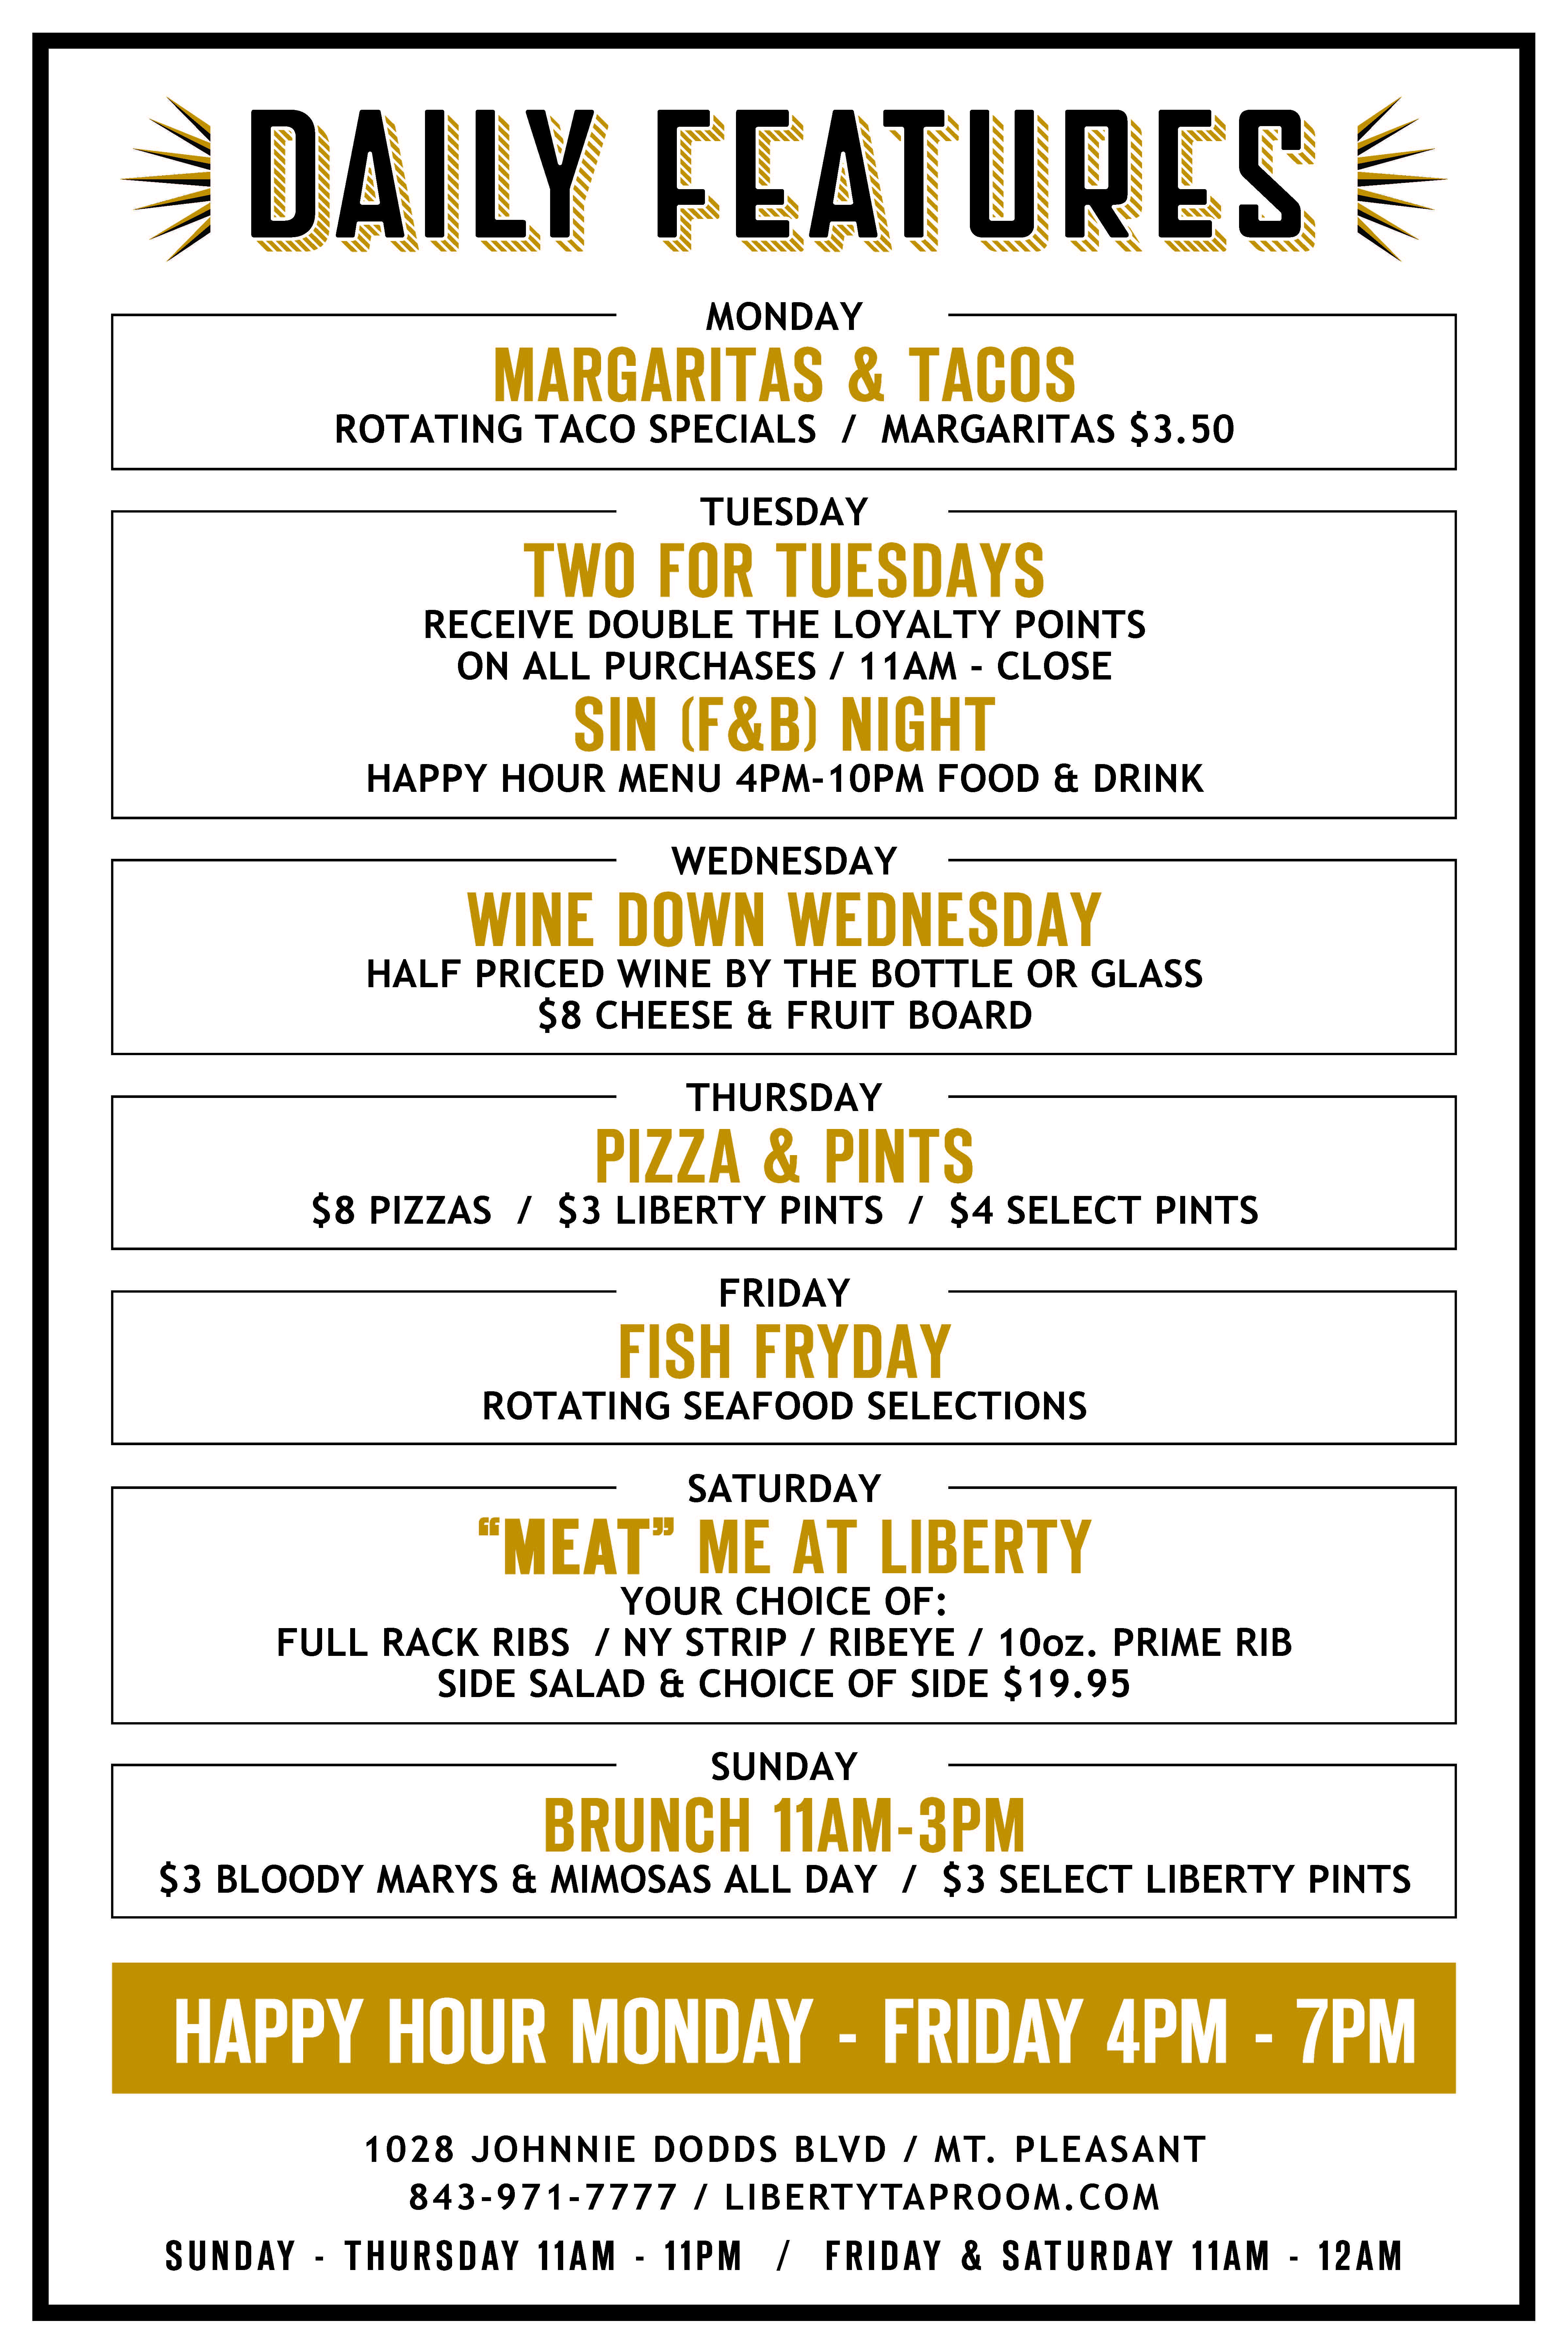 Liberty Tap Room Mt. Pleasant Daily Specials March 2018.jpg